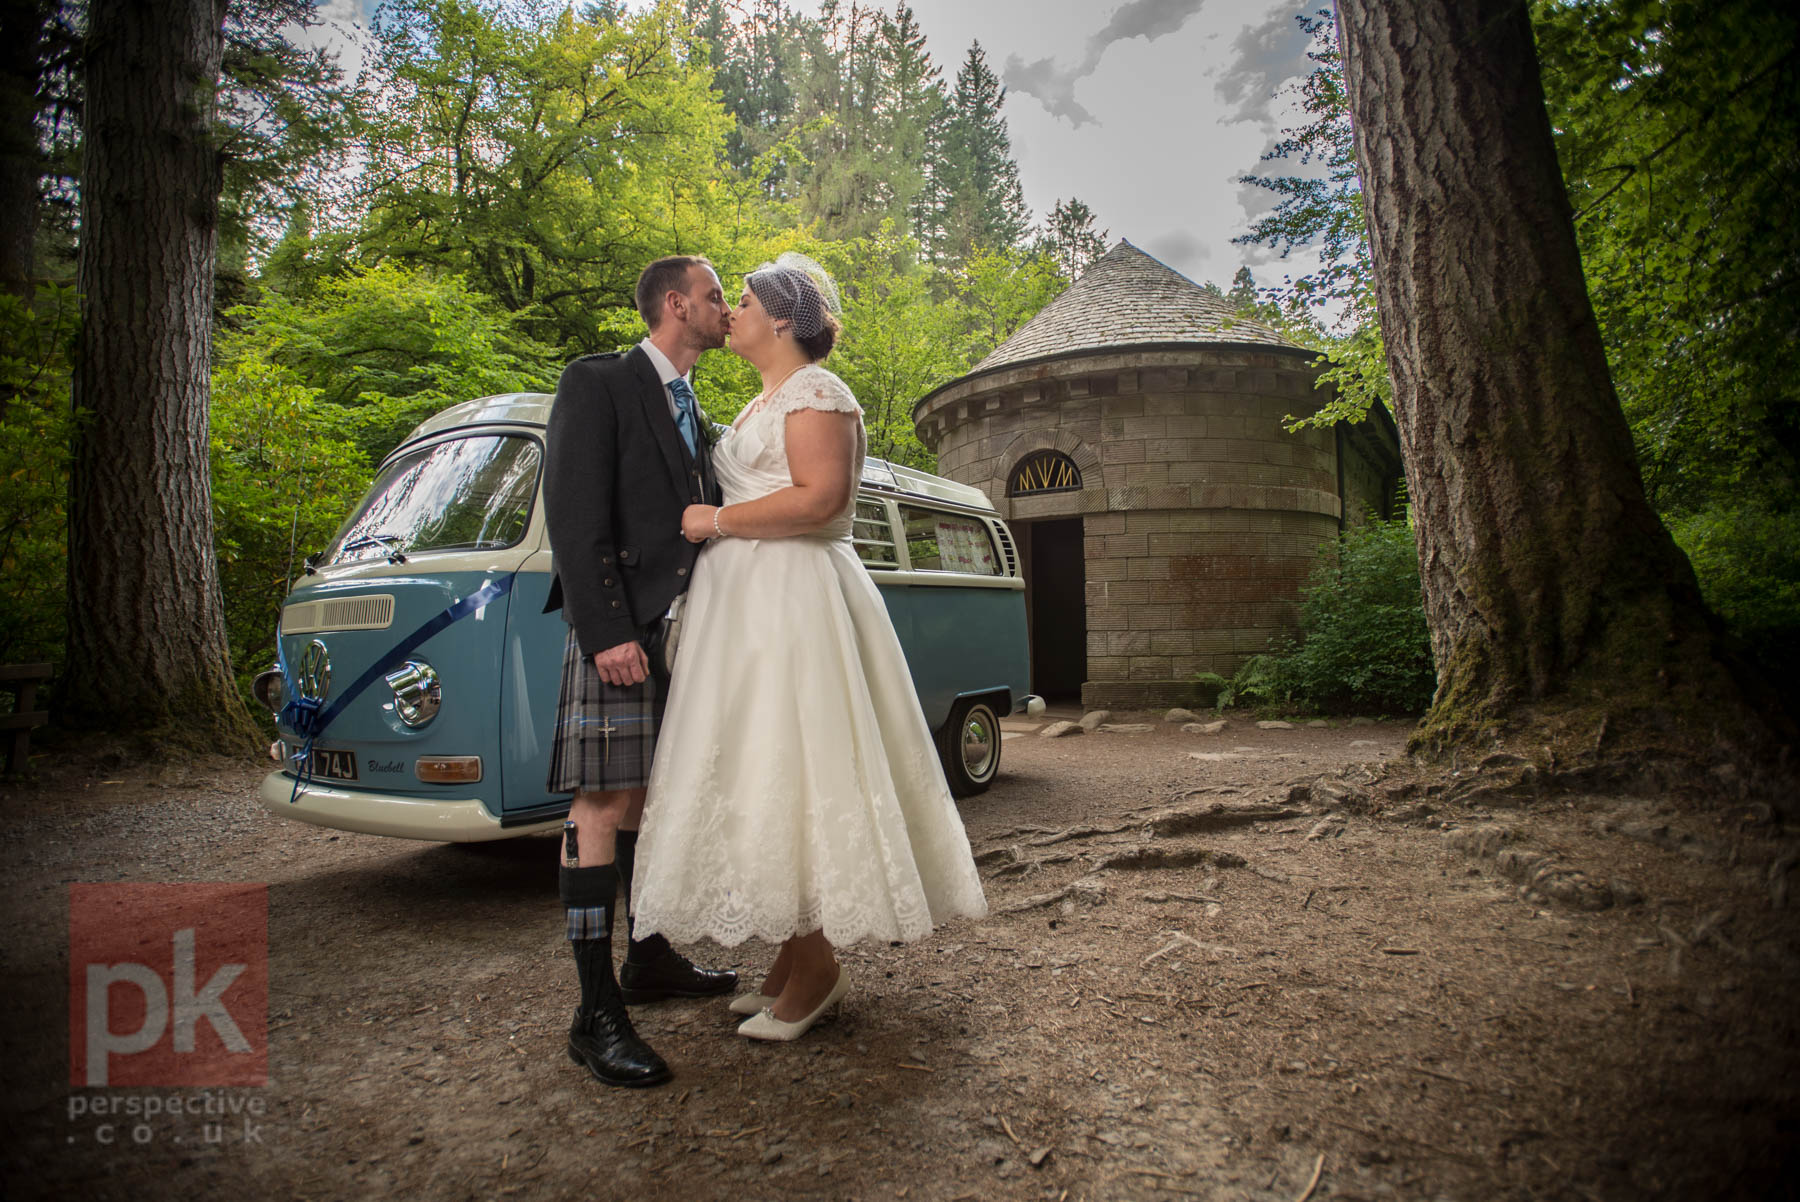 Another fantastic wedding for another fantastic local couple. I felt terrible that day, but was delighted to hear the couple were very pleased with the images.